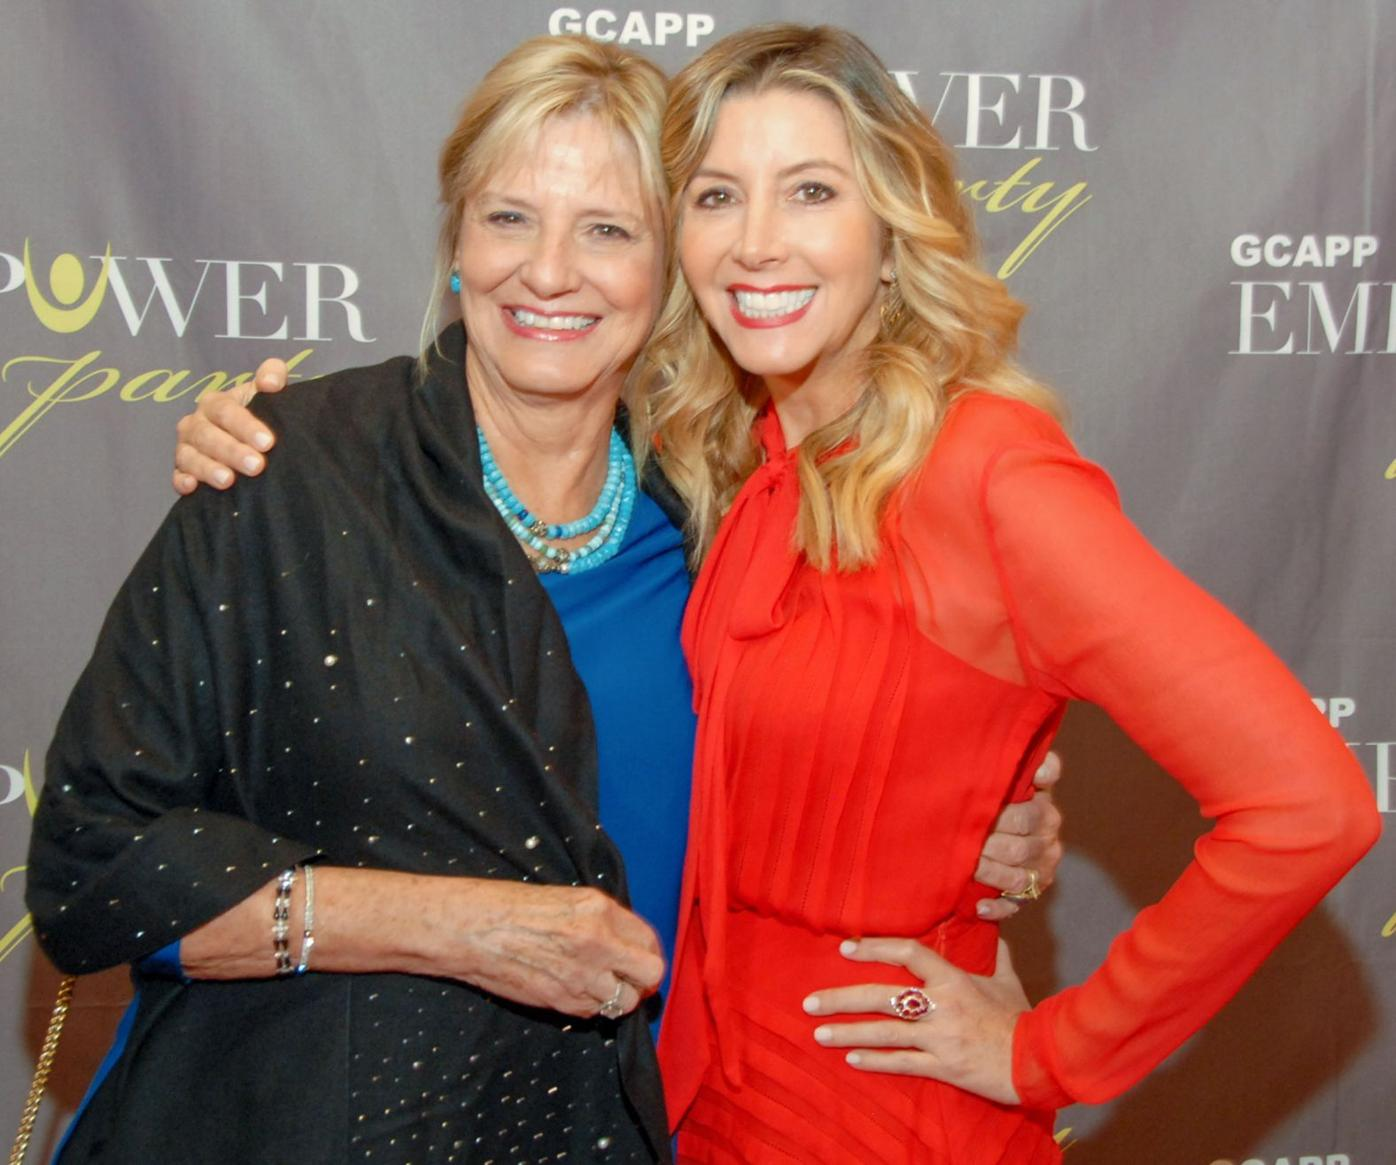 012220_MNS_full_Empower_post_005 Ellen Blakely Sara Blakely